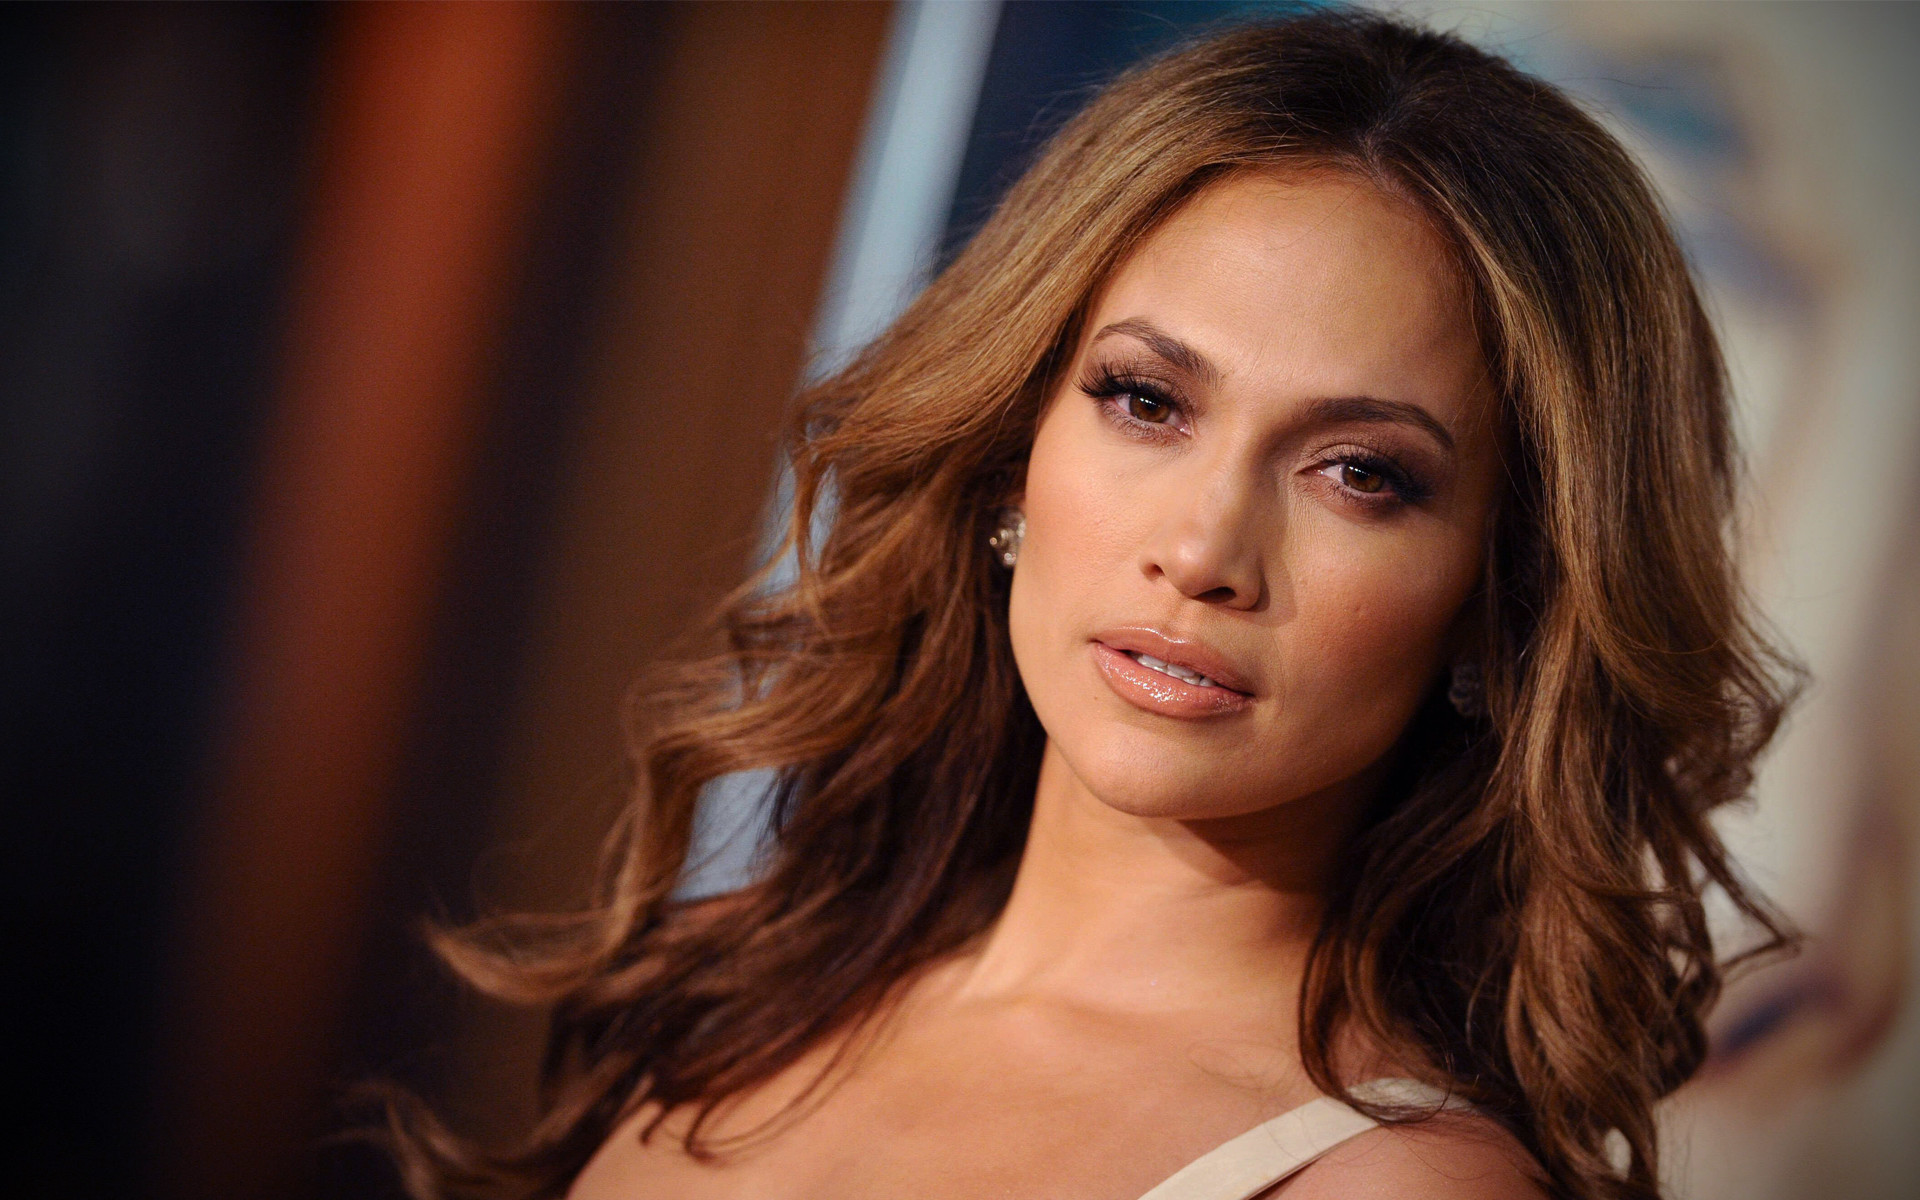 RAGTOLARGE: Jennifer Lopez